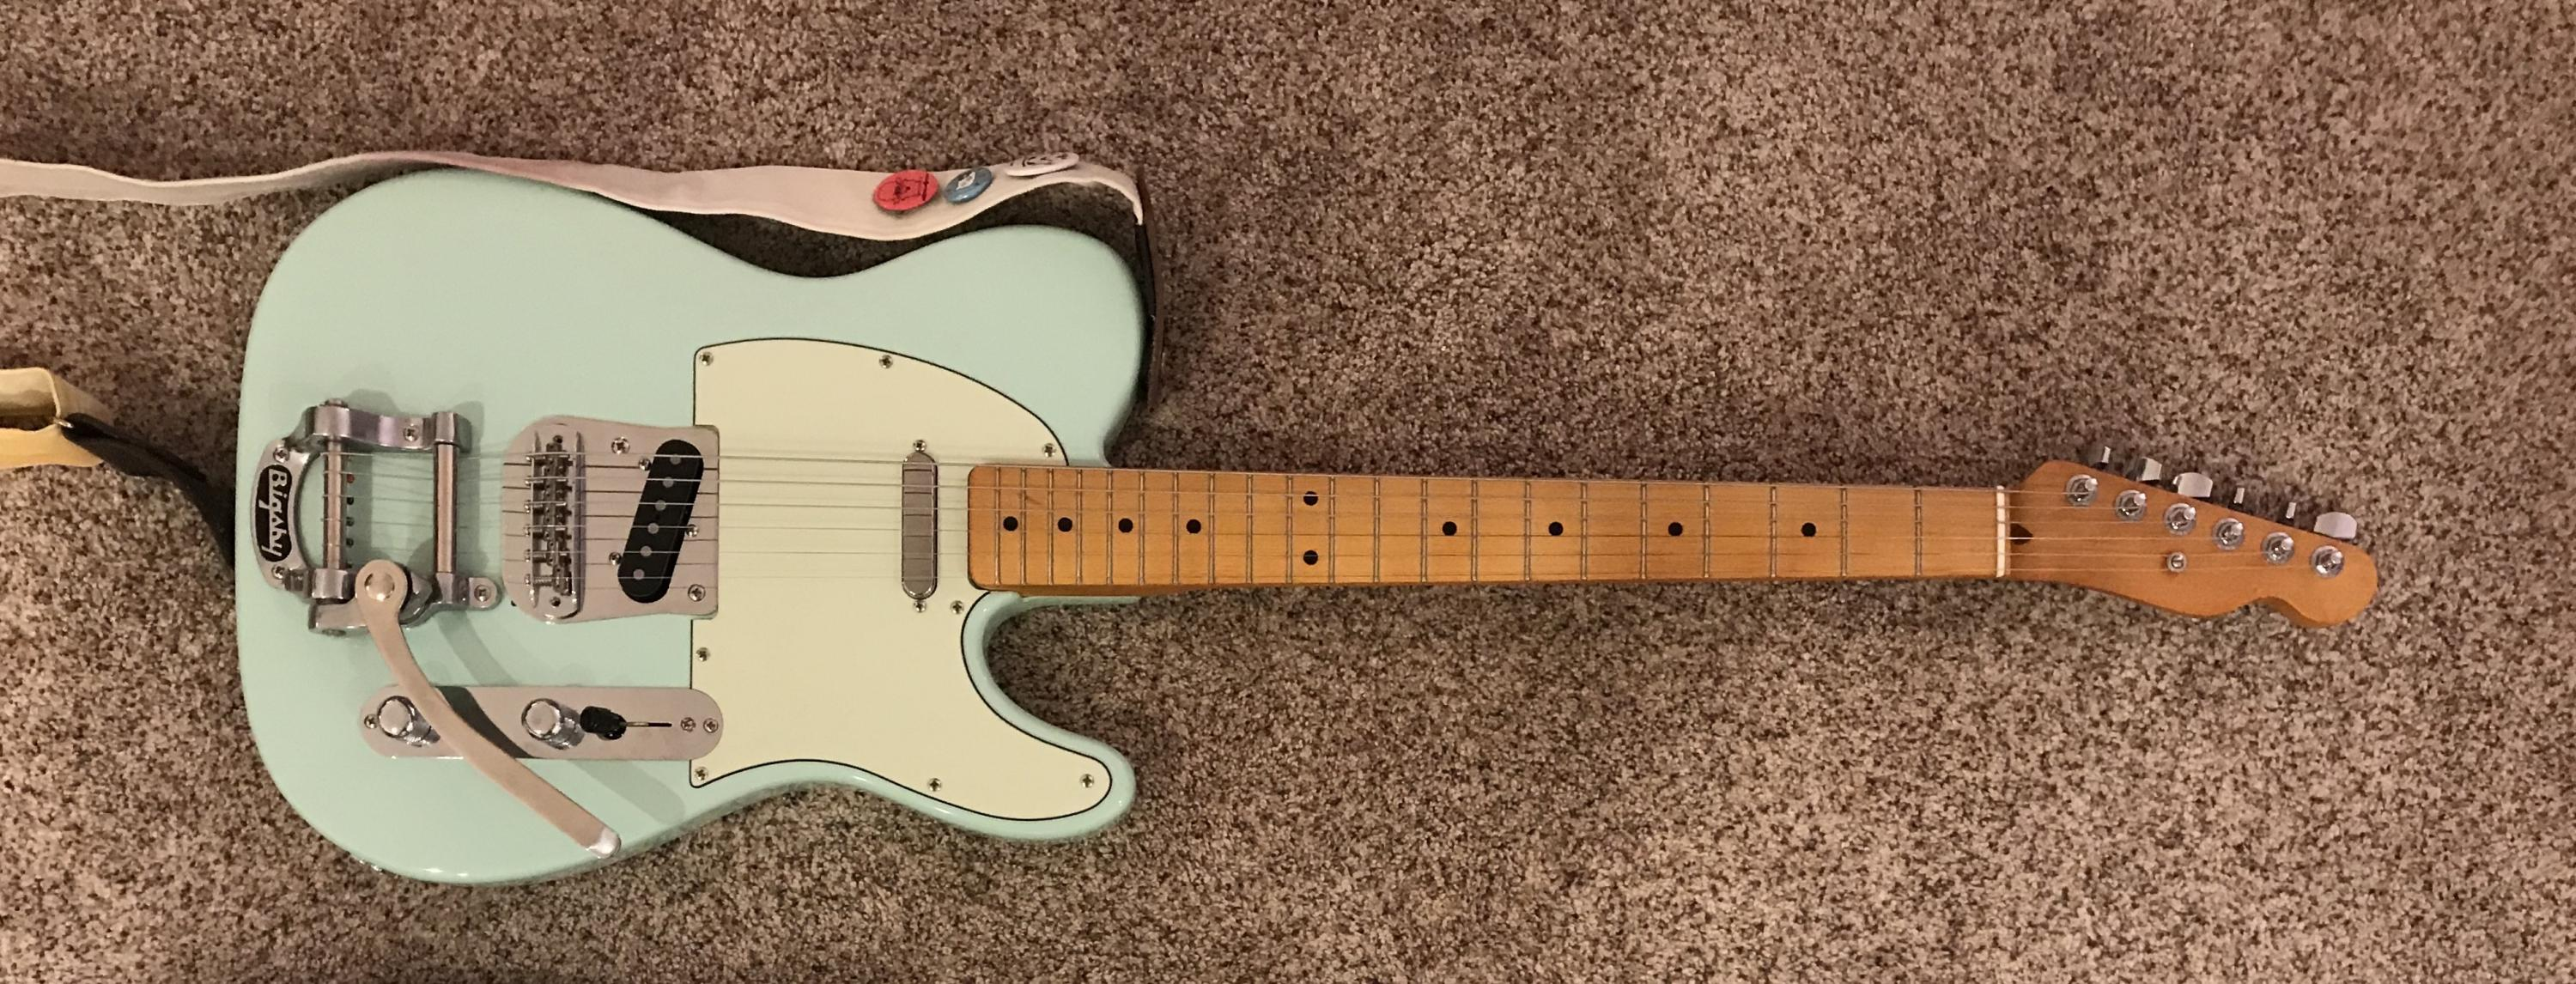 Telecaster Love Thread, No Archtops Allowed-jpeg-image-4-jpg